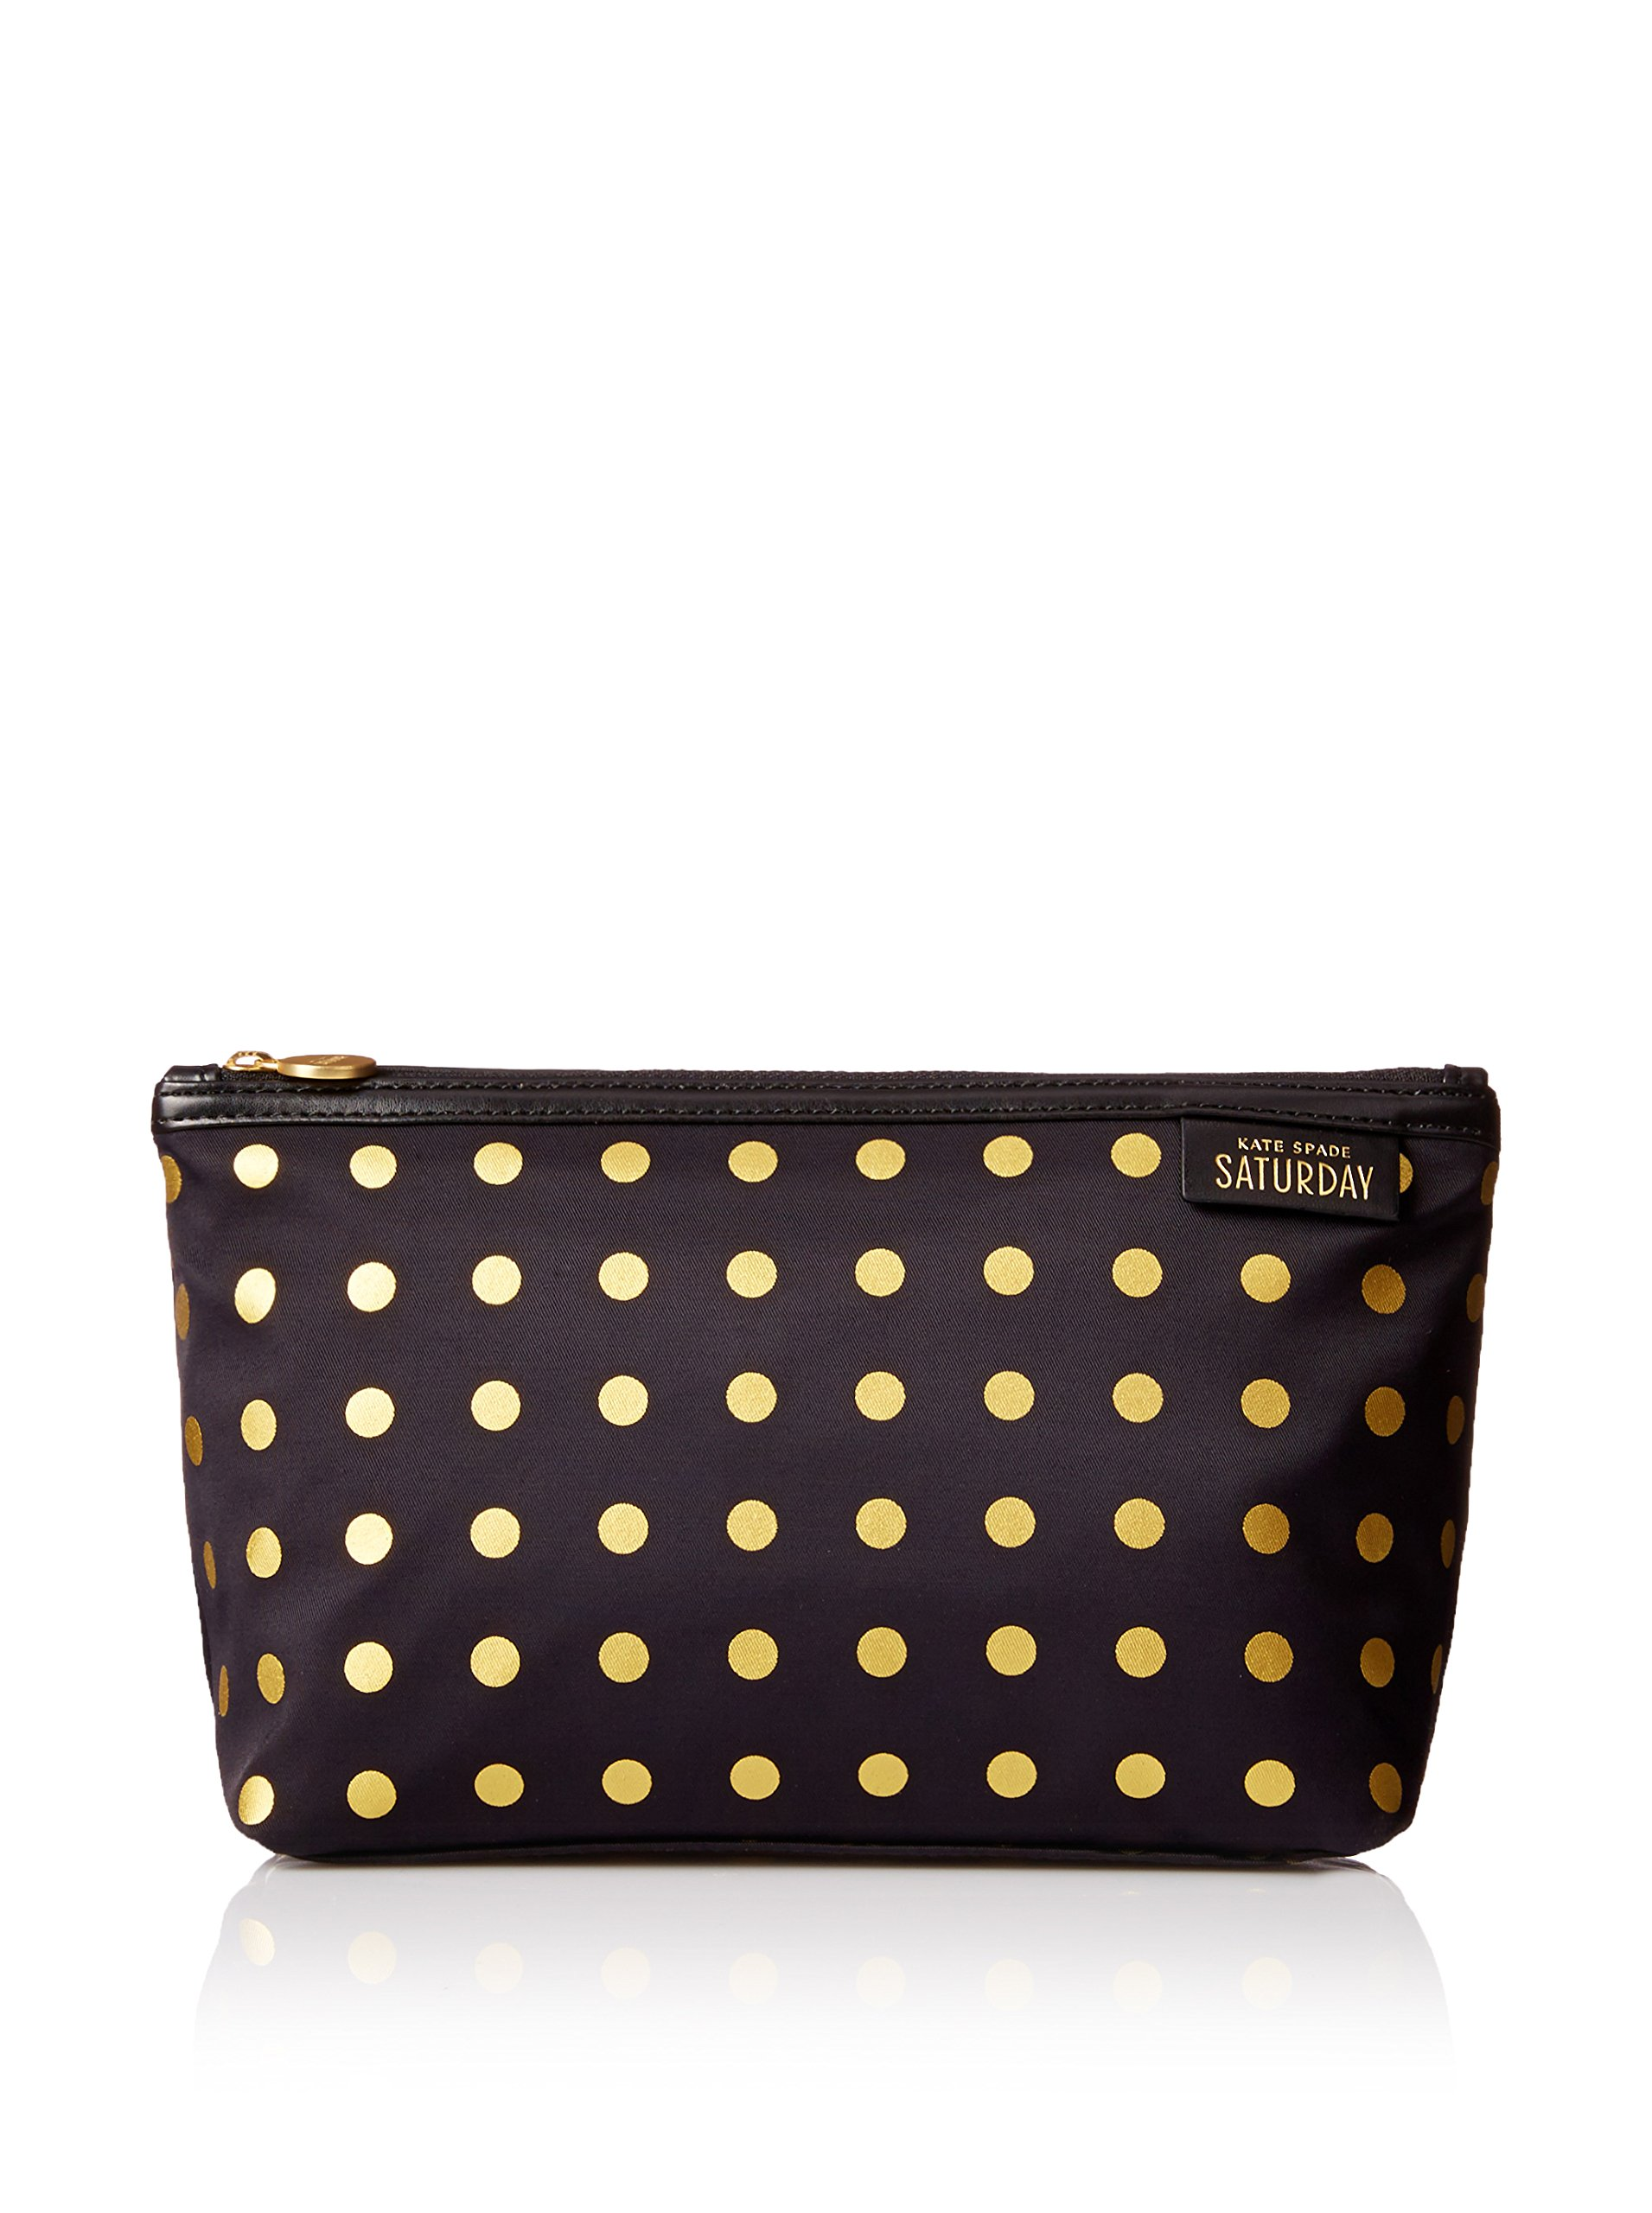 144310ea0161 Get Quotations · Kate Spade Saturday Black with Gold Dots Cosmetic and Toiletry  Bag